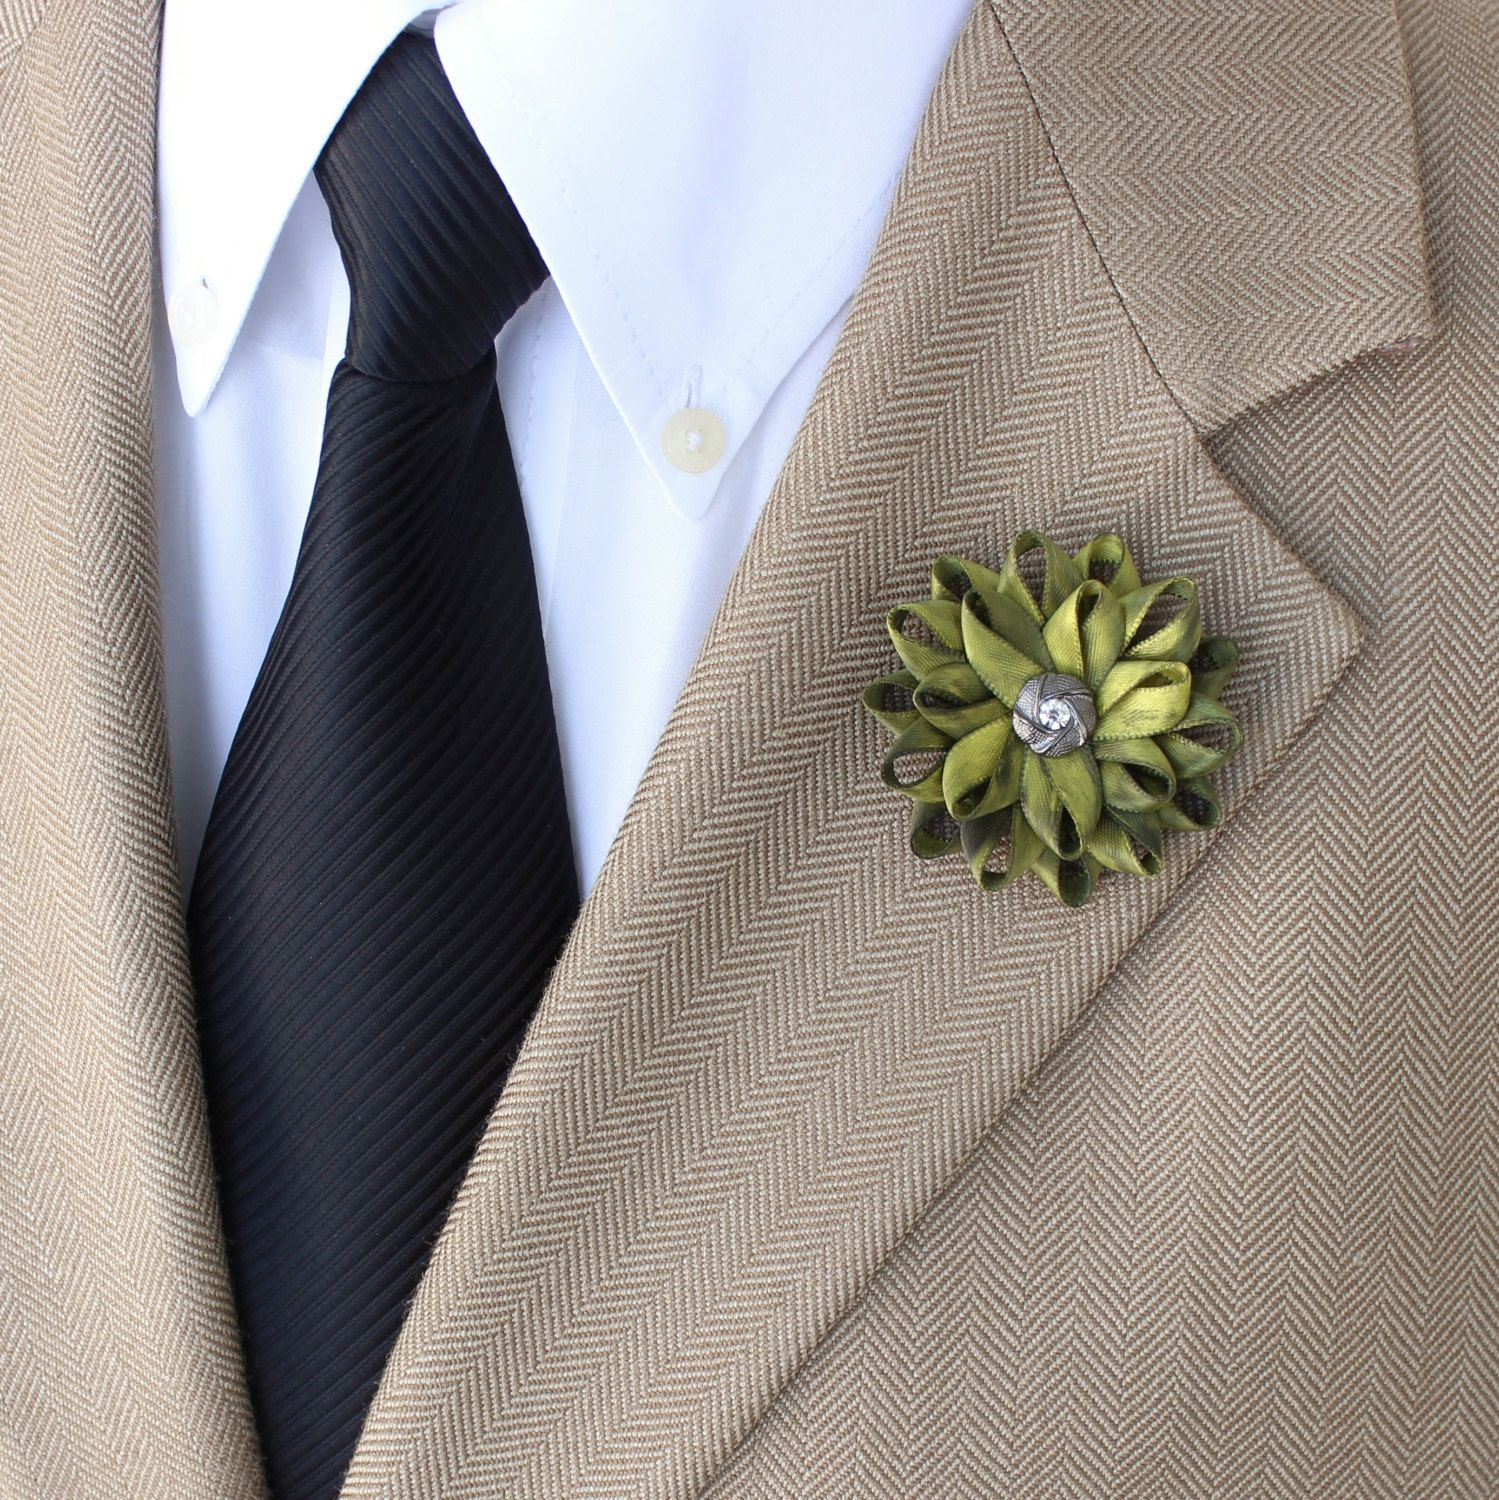 Mens Fashion Mens Gifts Mens Lapel Pin Handmade Lapel Flower for Men Mens Flower Pin Flower Lapel Pin for Men Unique Gift for Him